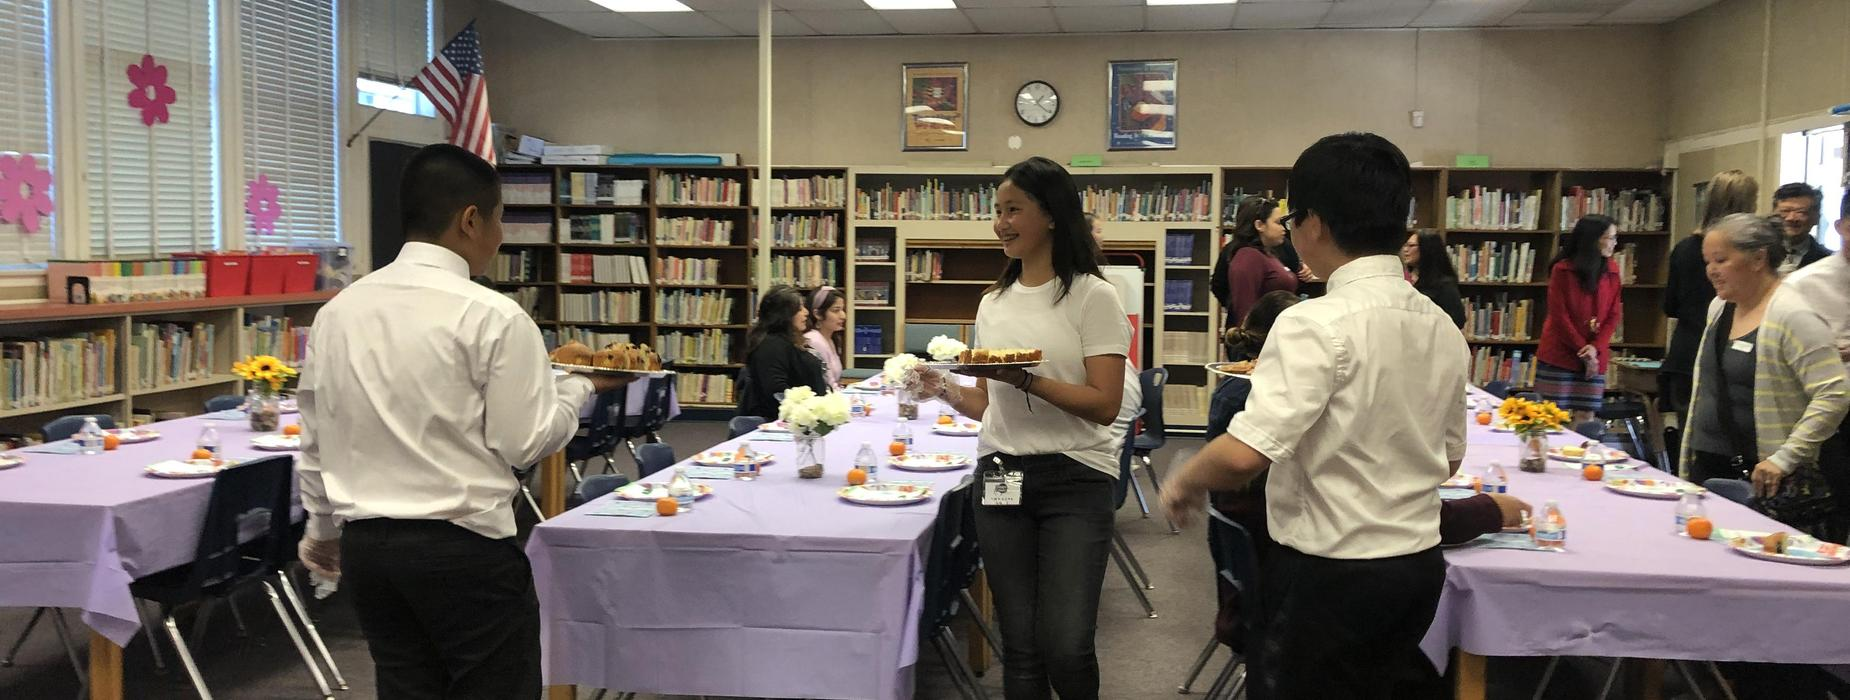 Marguerita students during lunch event